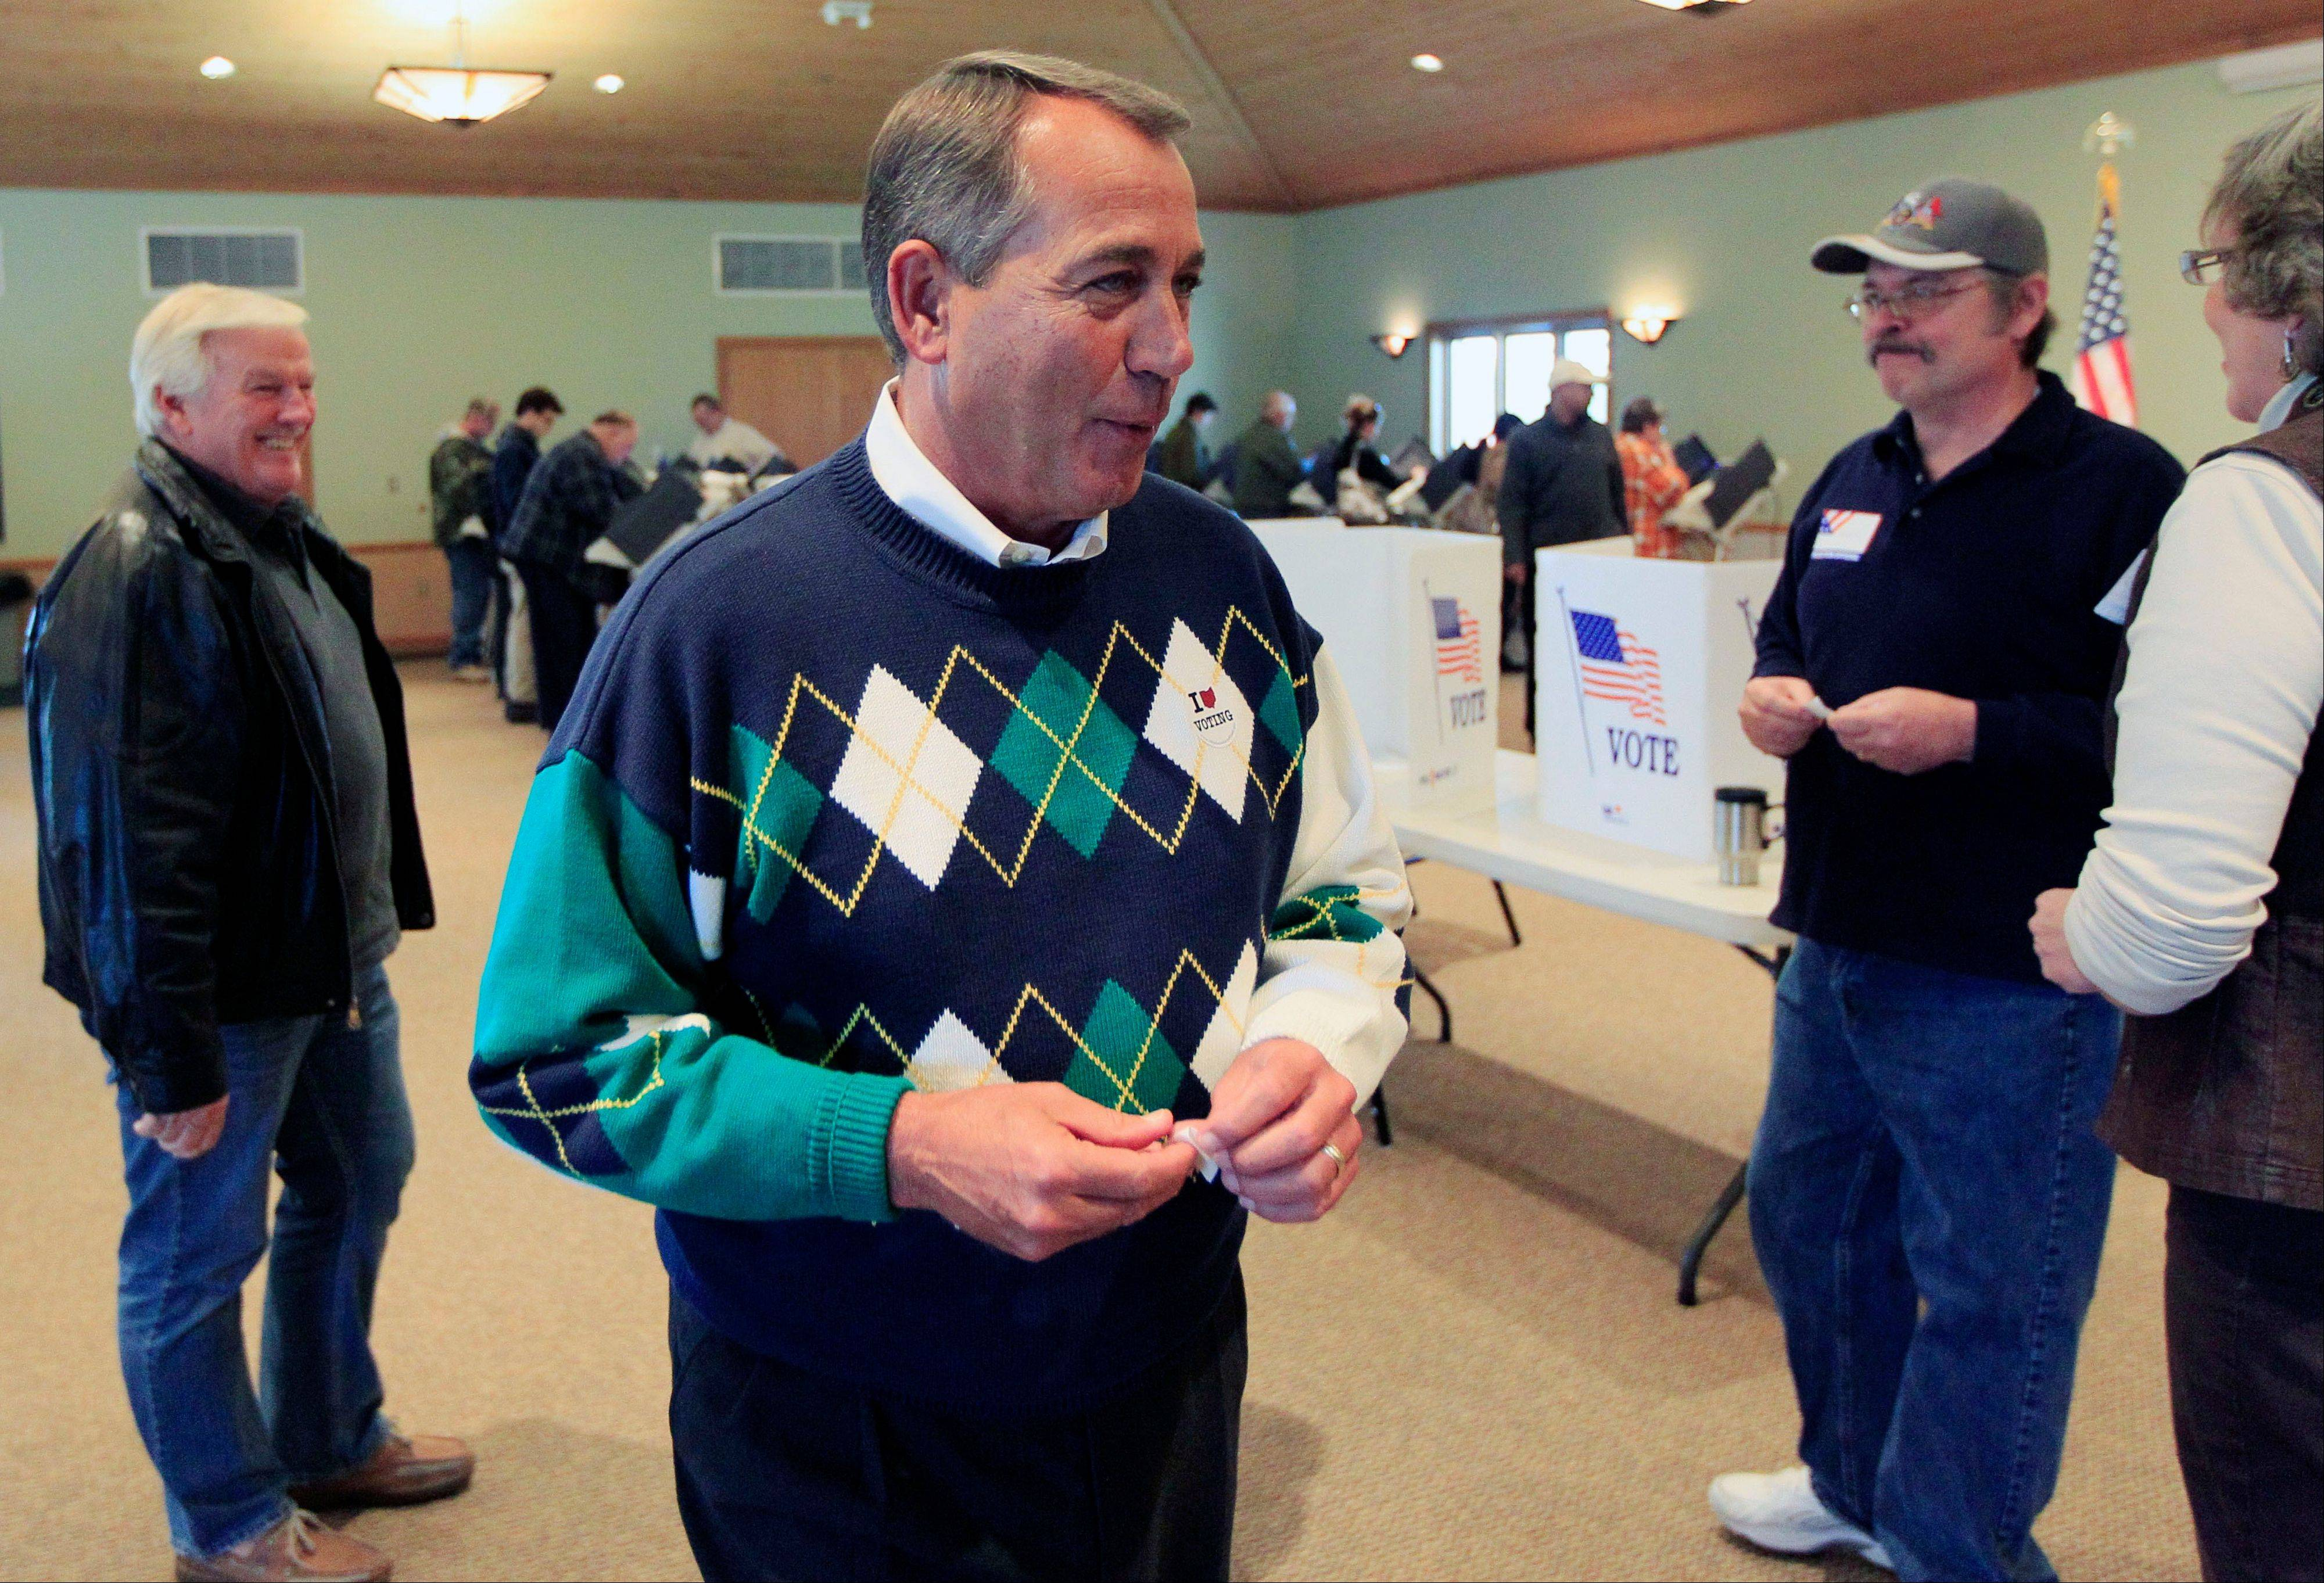 GOP House Speaker John Boehner of Ohio talks with poll workers after voting at Ronald Reagan Lodge, in West Chester, Ohio.